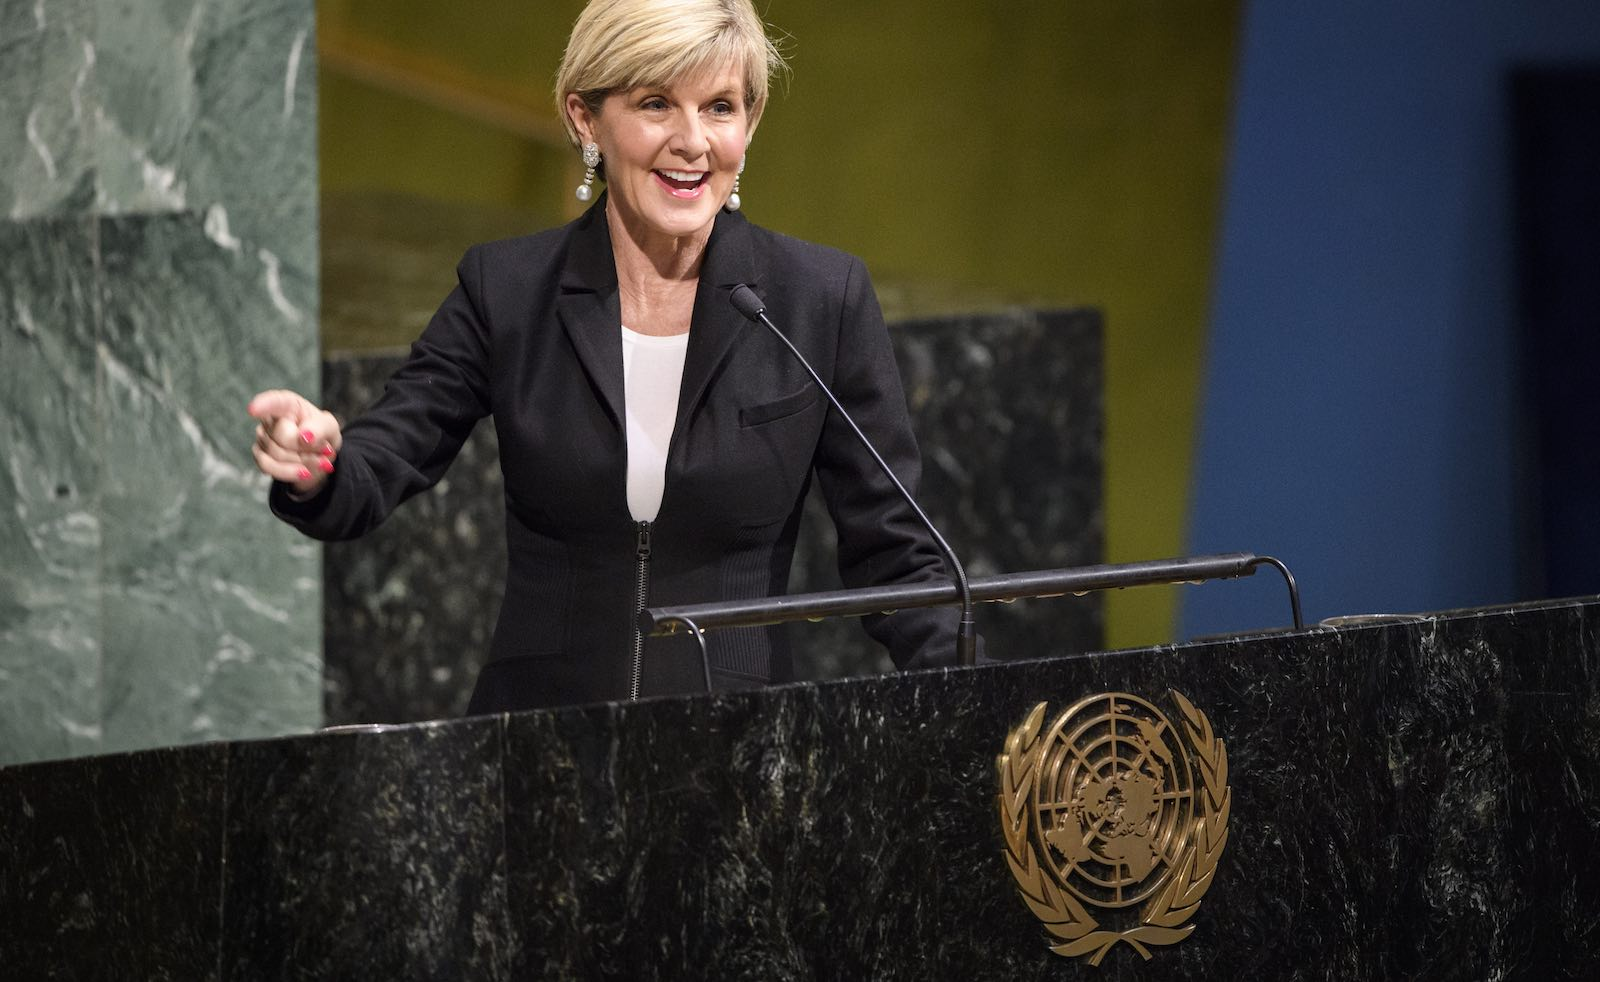 Julie Bishop, as Foreign Minister, speaking at UN headquarters in New York on International Women's Day 2018 (Photo: Manuel Elias/UN)